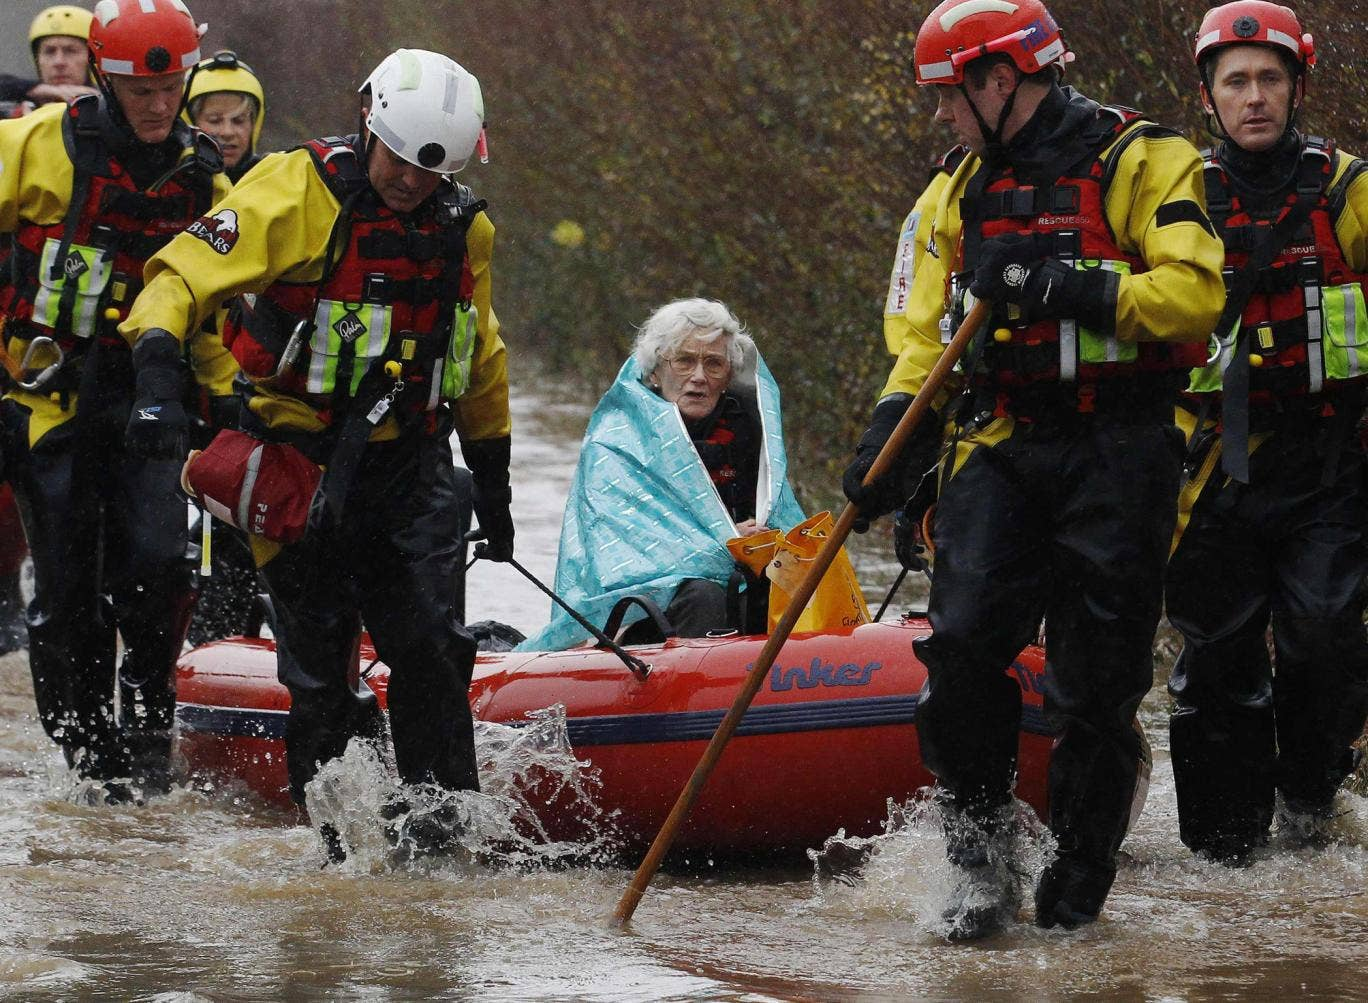 Rescued: The scene in Somerset yesterday